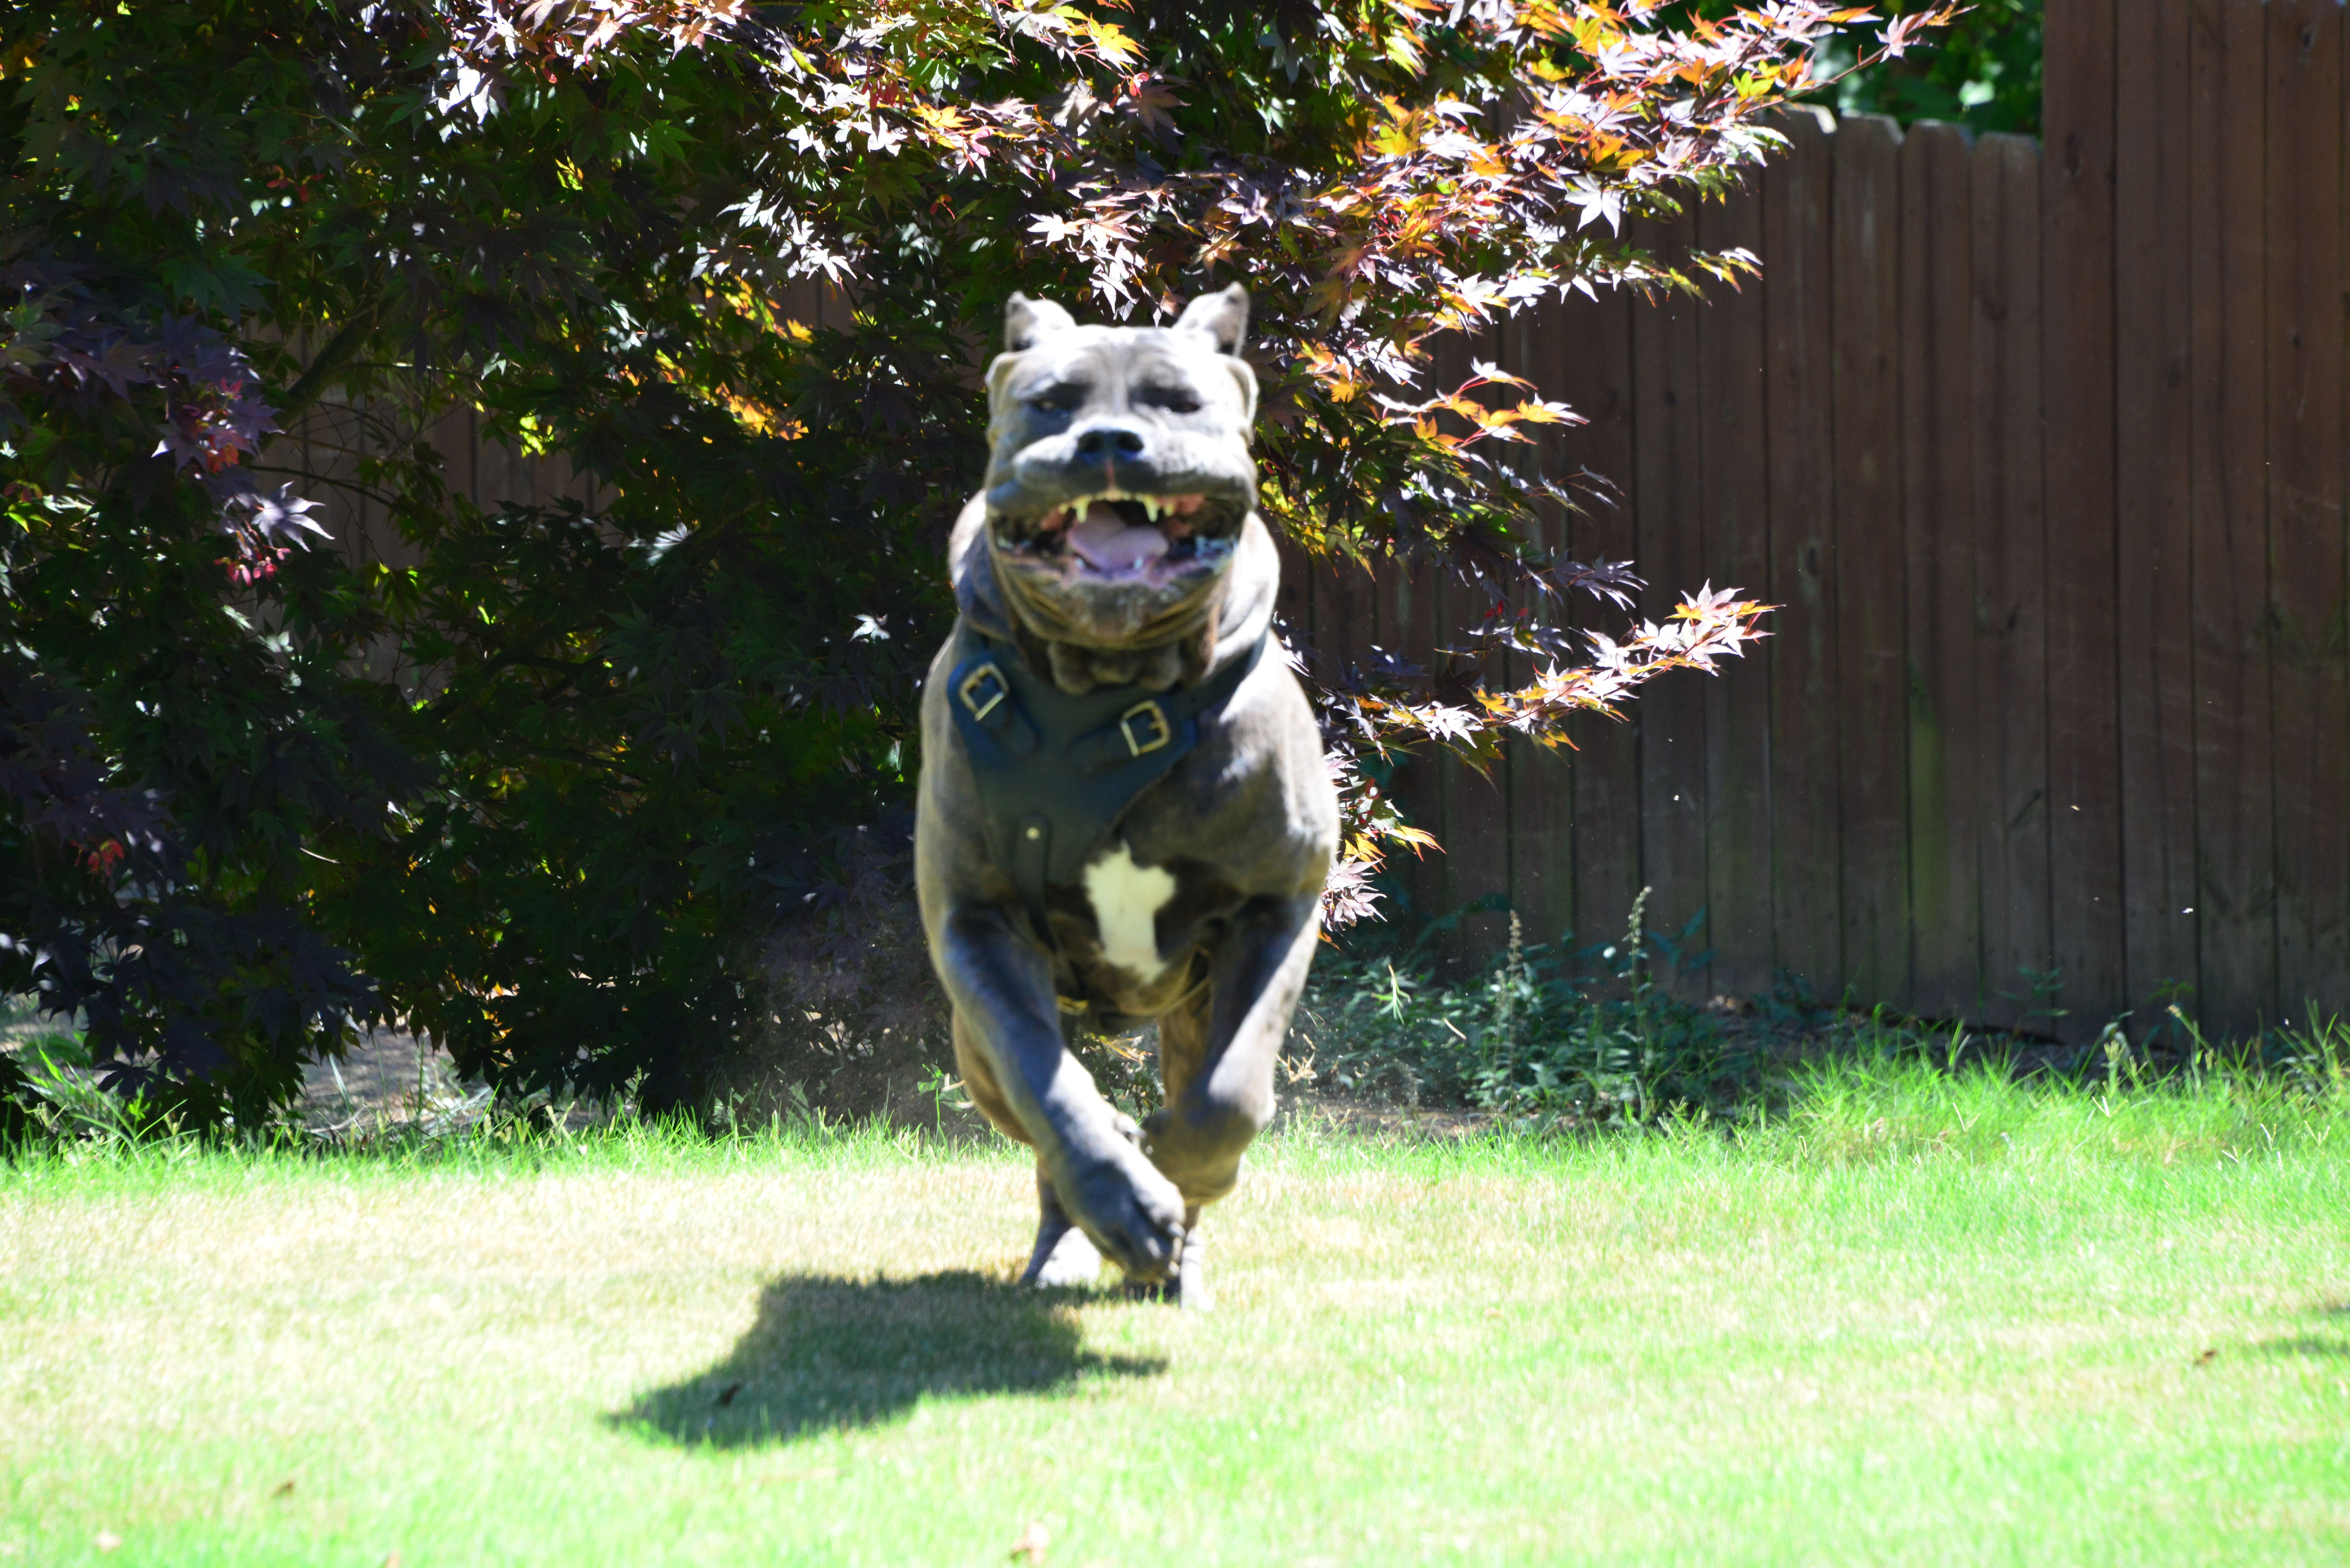 Pin By Hierarchy Cane Corso Kennel On Hierarchy Cane Corso Cane Corso Animals Dogs